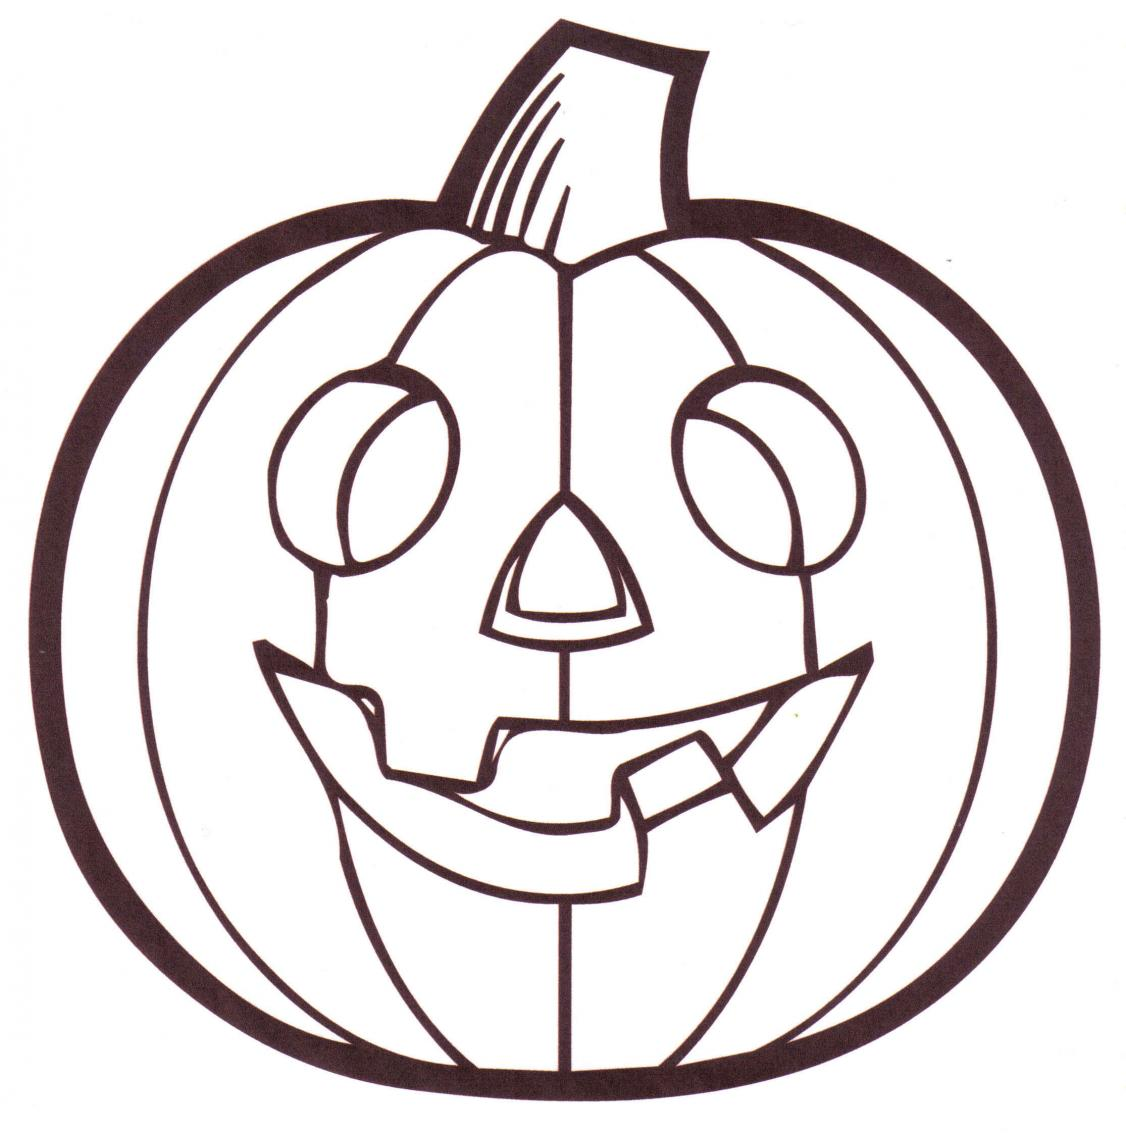 Drawn pumpkin color for kid Pages Printable Free Coloring Coloring